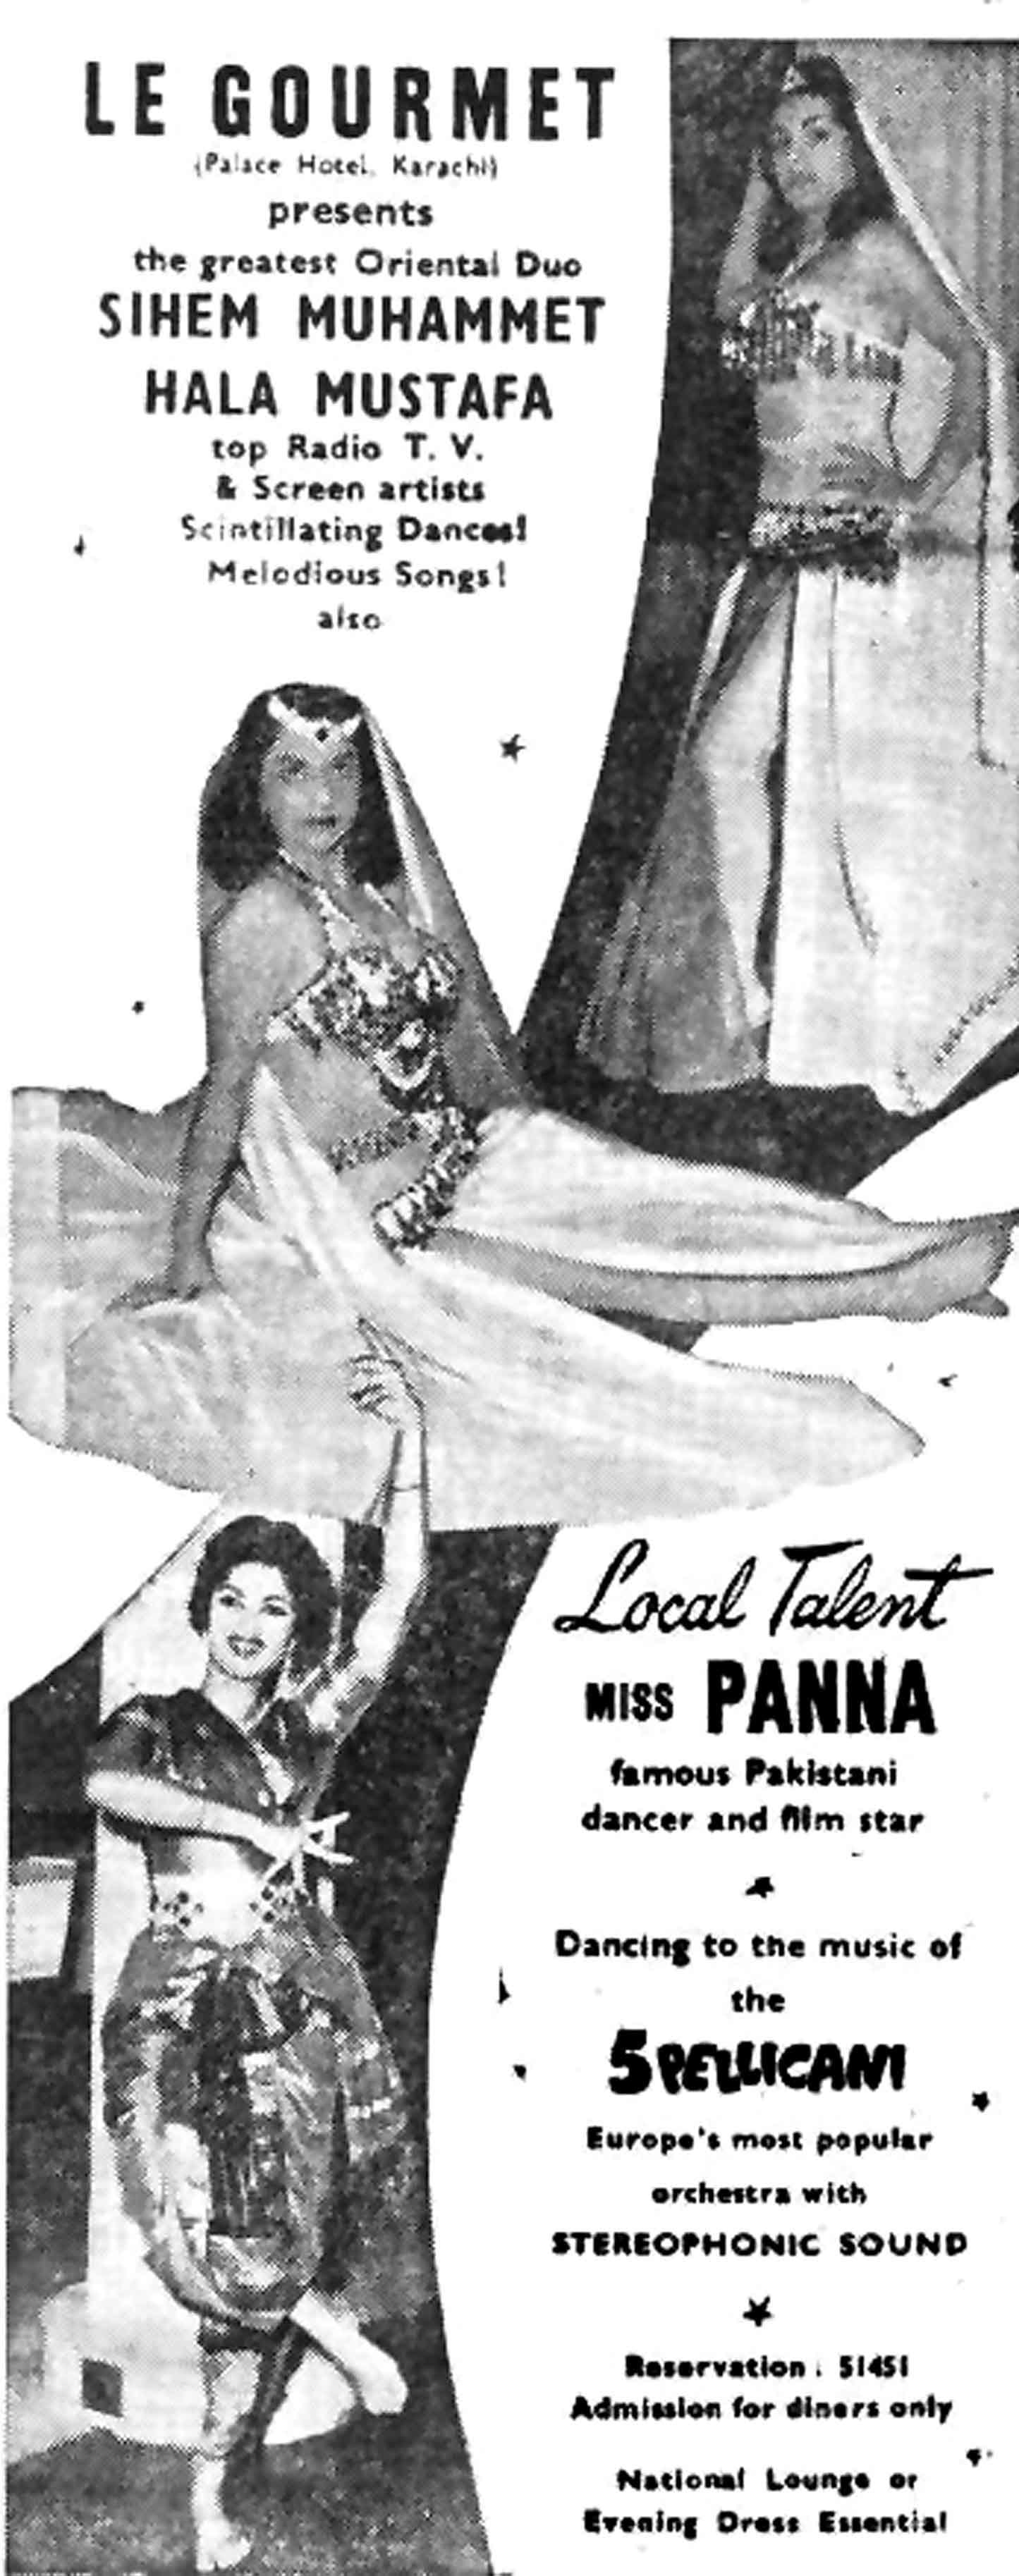 Panna, featured in the above ad, was a Pakistani film star and dancer. She was the star attraction at Le Gourmet, which was possibly Karachi's first nightclub and was located on the ground floor of the Palace Hotel.